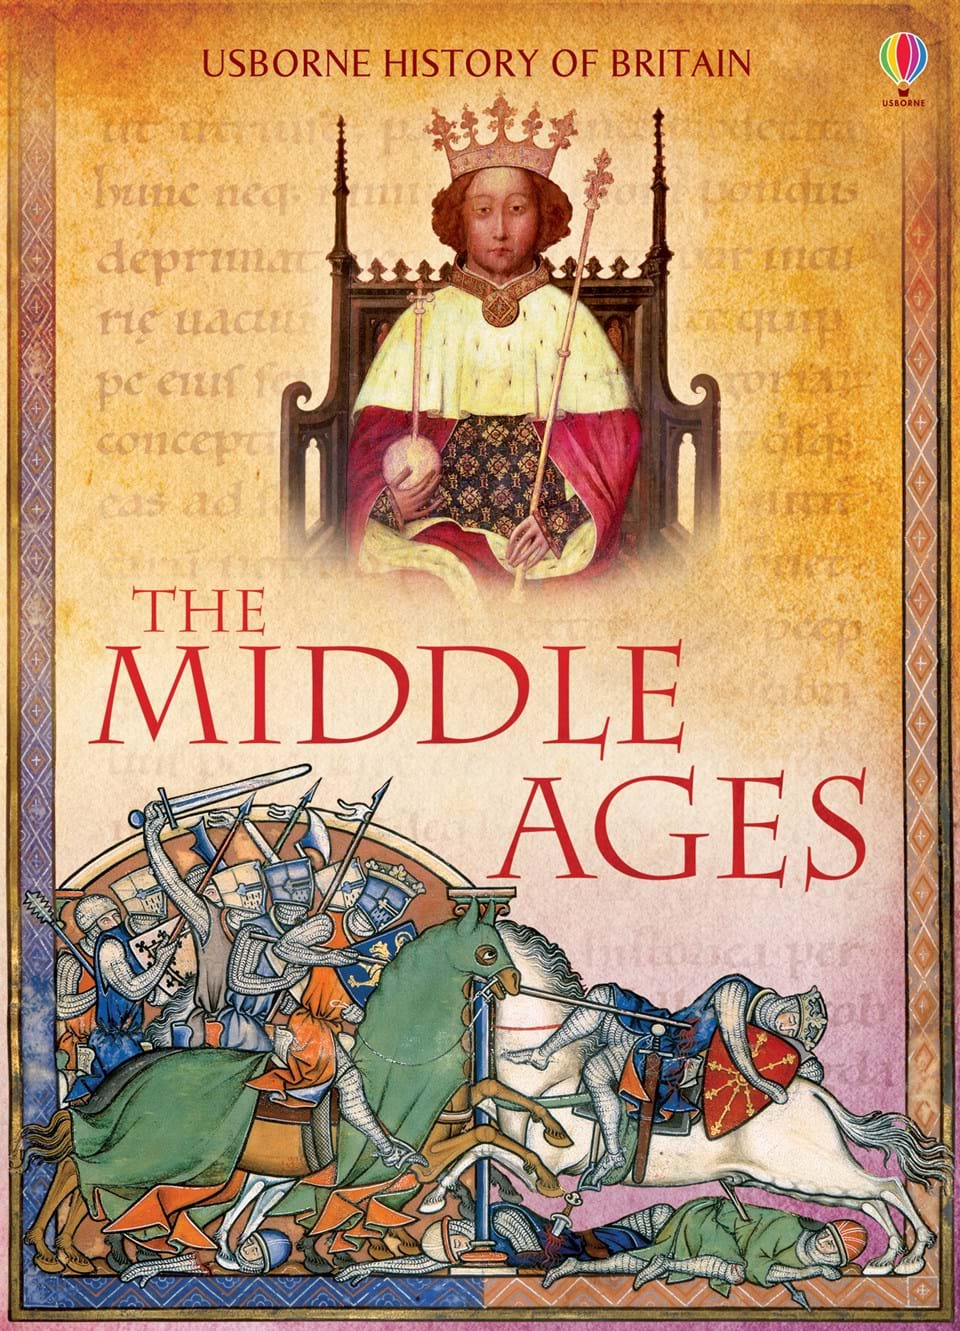 family relationship building techniques of the middle ages